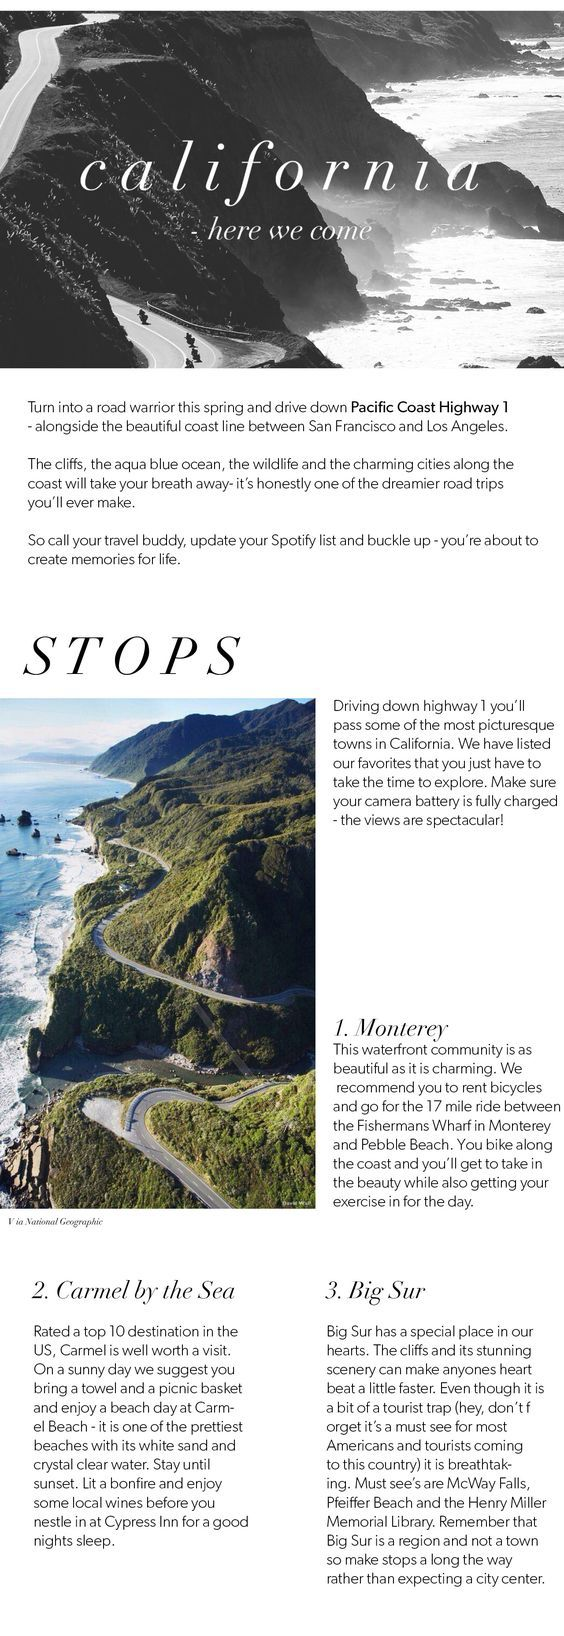 The Journal » ROAPTRIP ALONG PCH. Has restaurant recommendations